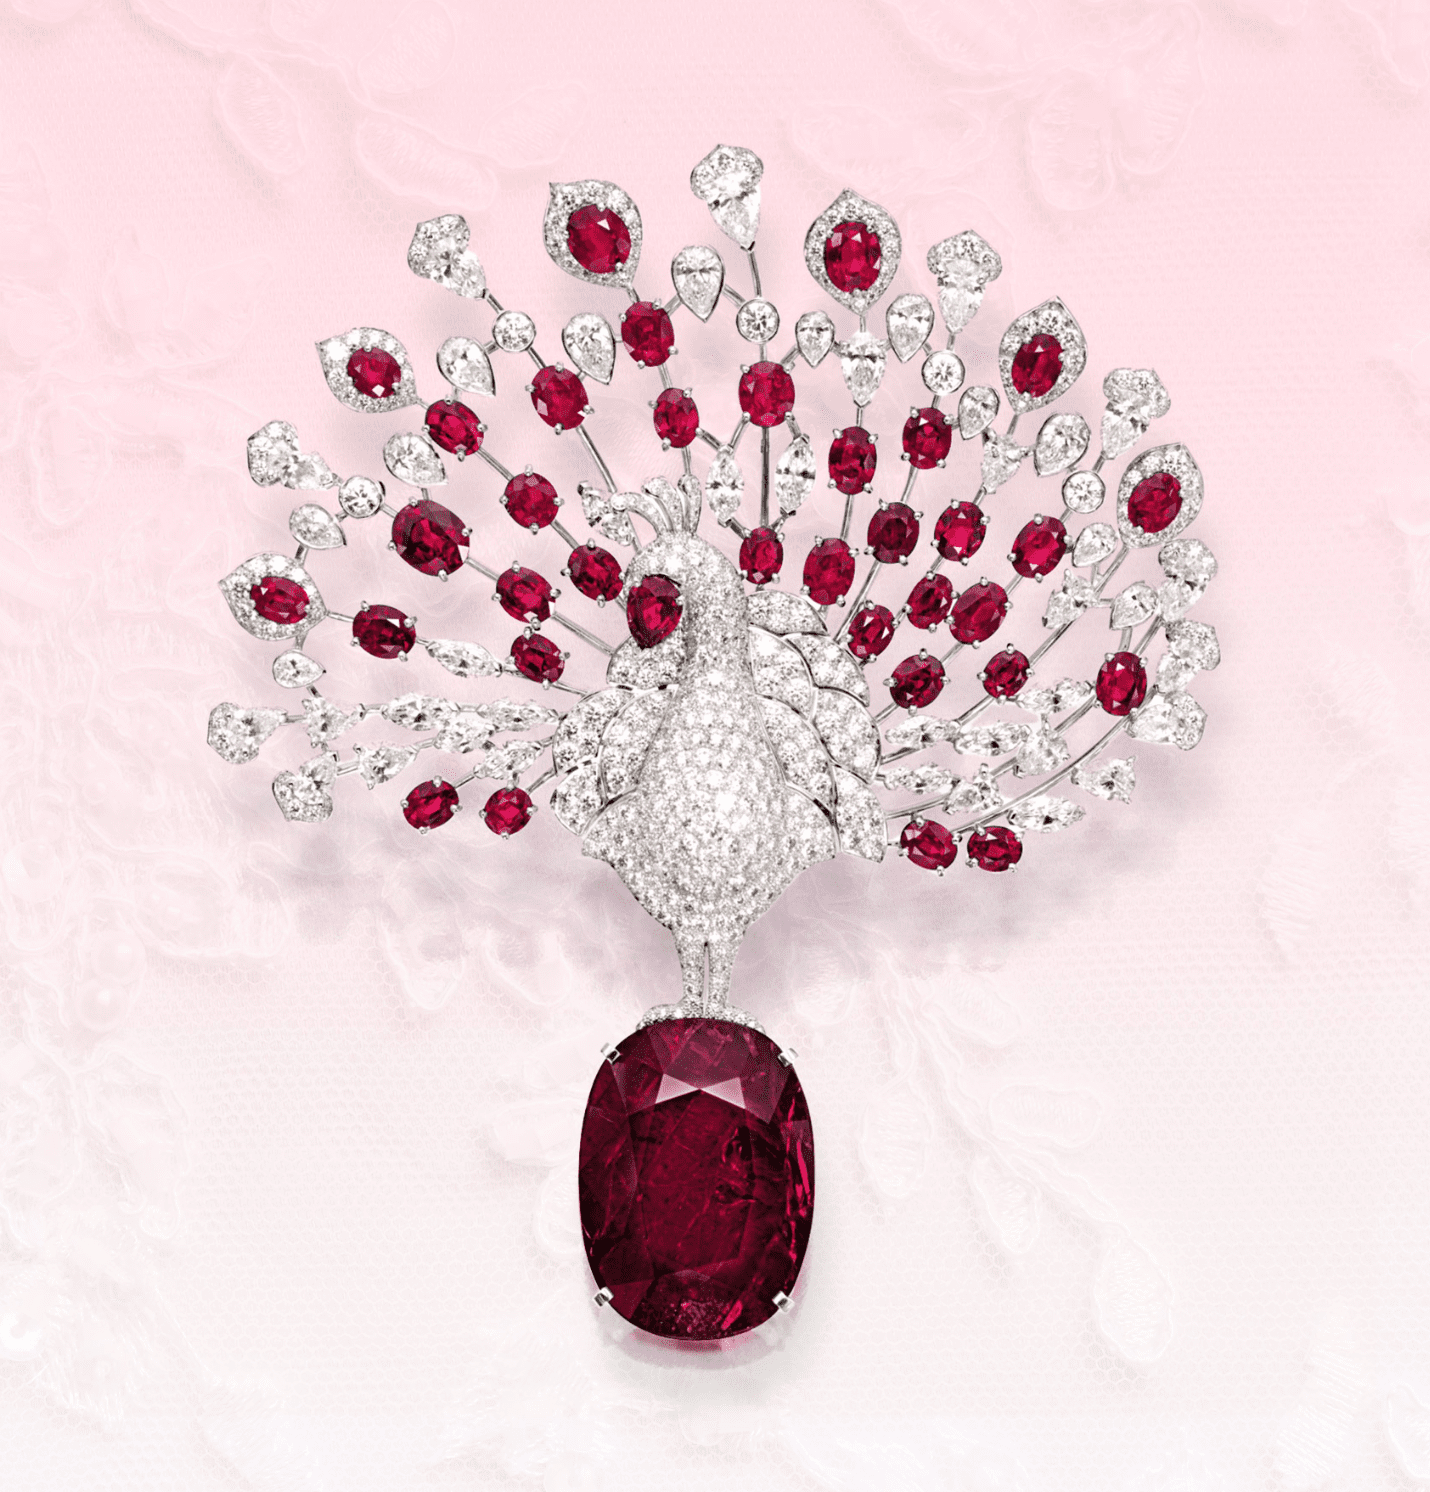 Cartier Peacock brooch with Mozambique rubies